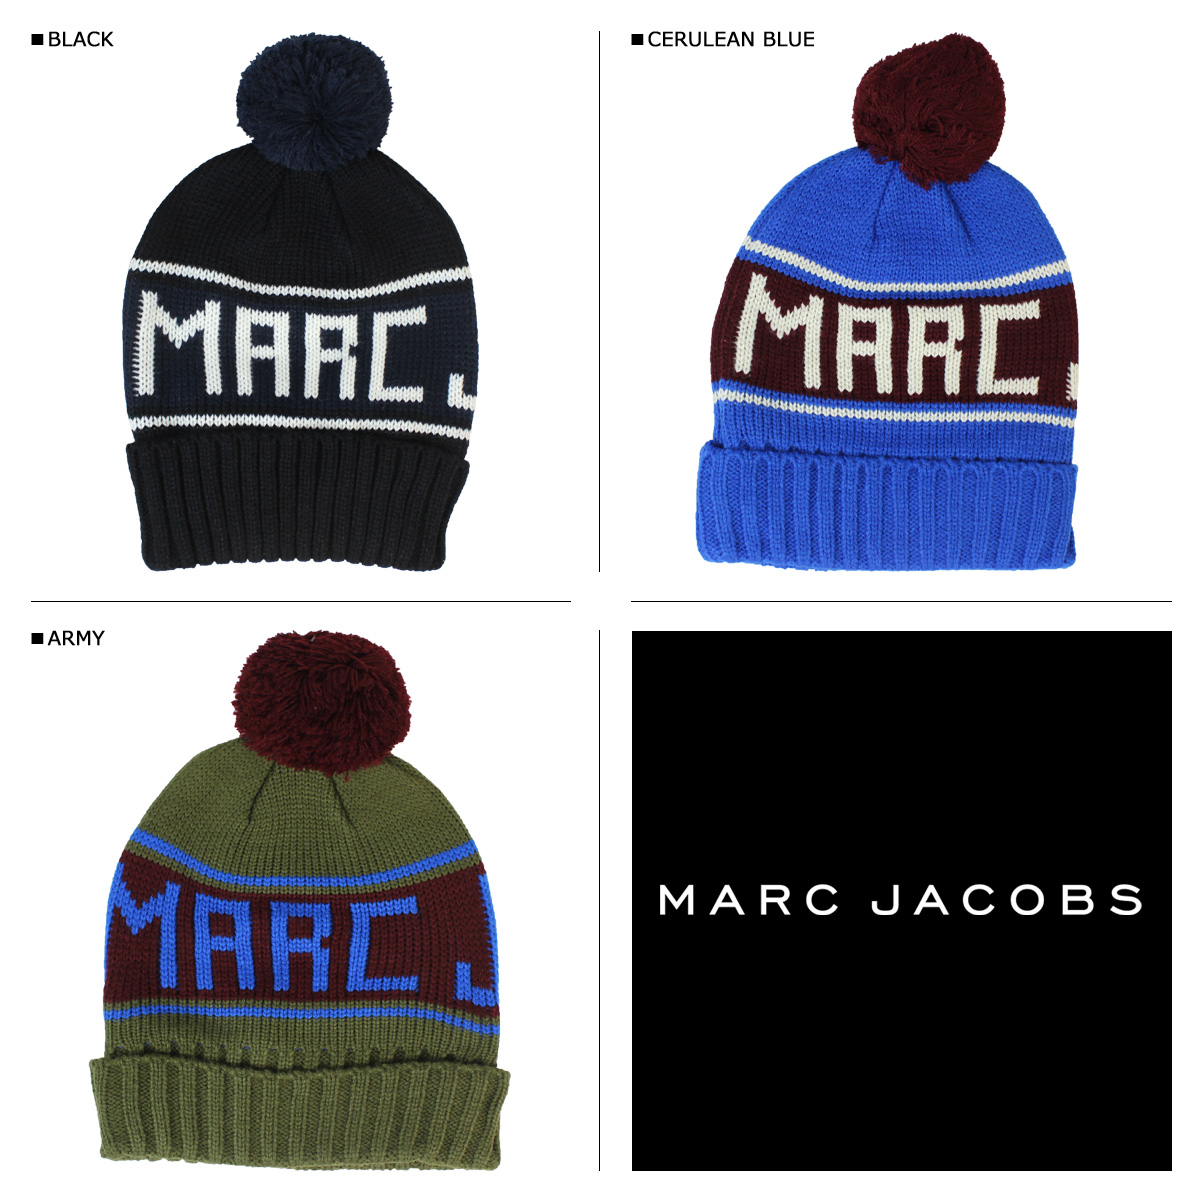 59575d46517  arrival ♪ long-awaited the latest item of mark by mark Jacobs  ・The knit  hat which lets you feel the winter that is the Heide existence like the mark